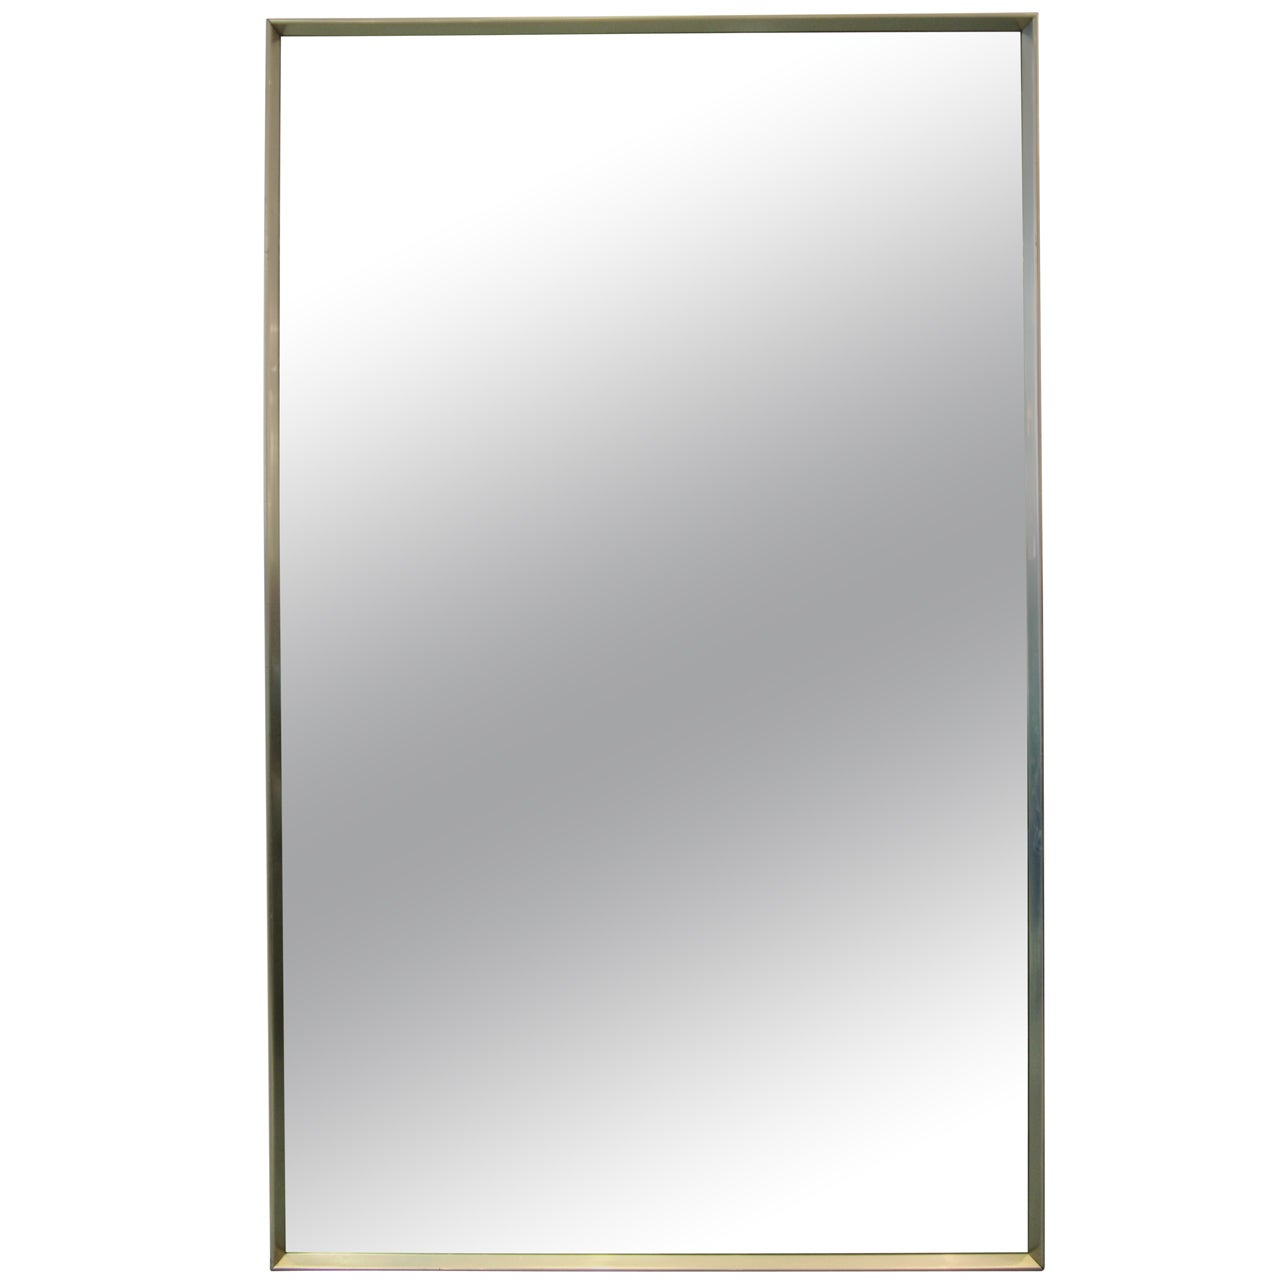 Minimalist Stainless Steel Mirror